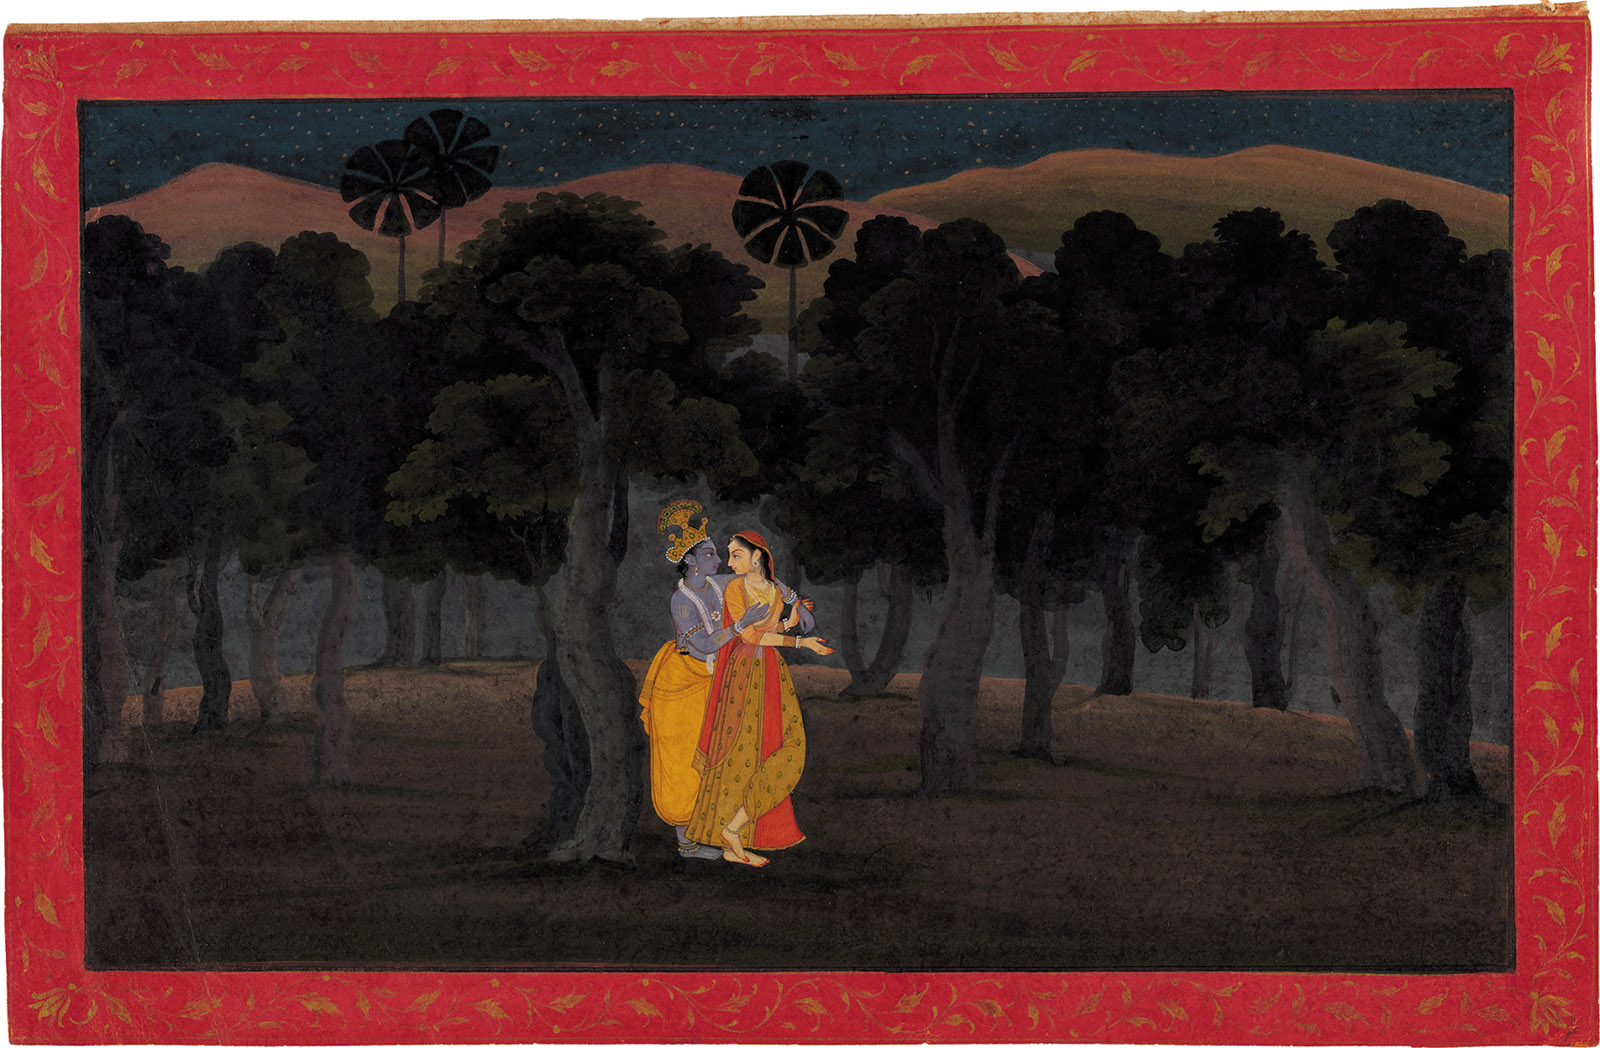 'The Lovers Radha and Krishna in a Palm Grove'; miniature painting from the 'Tehri Garhwal' Gita ­Govinda (Song of the Cowherds), Punjab Hills, kingdom of Kangra or Guler, circa 1775–1780